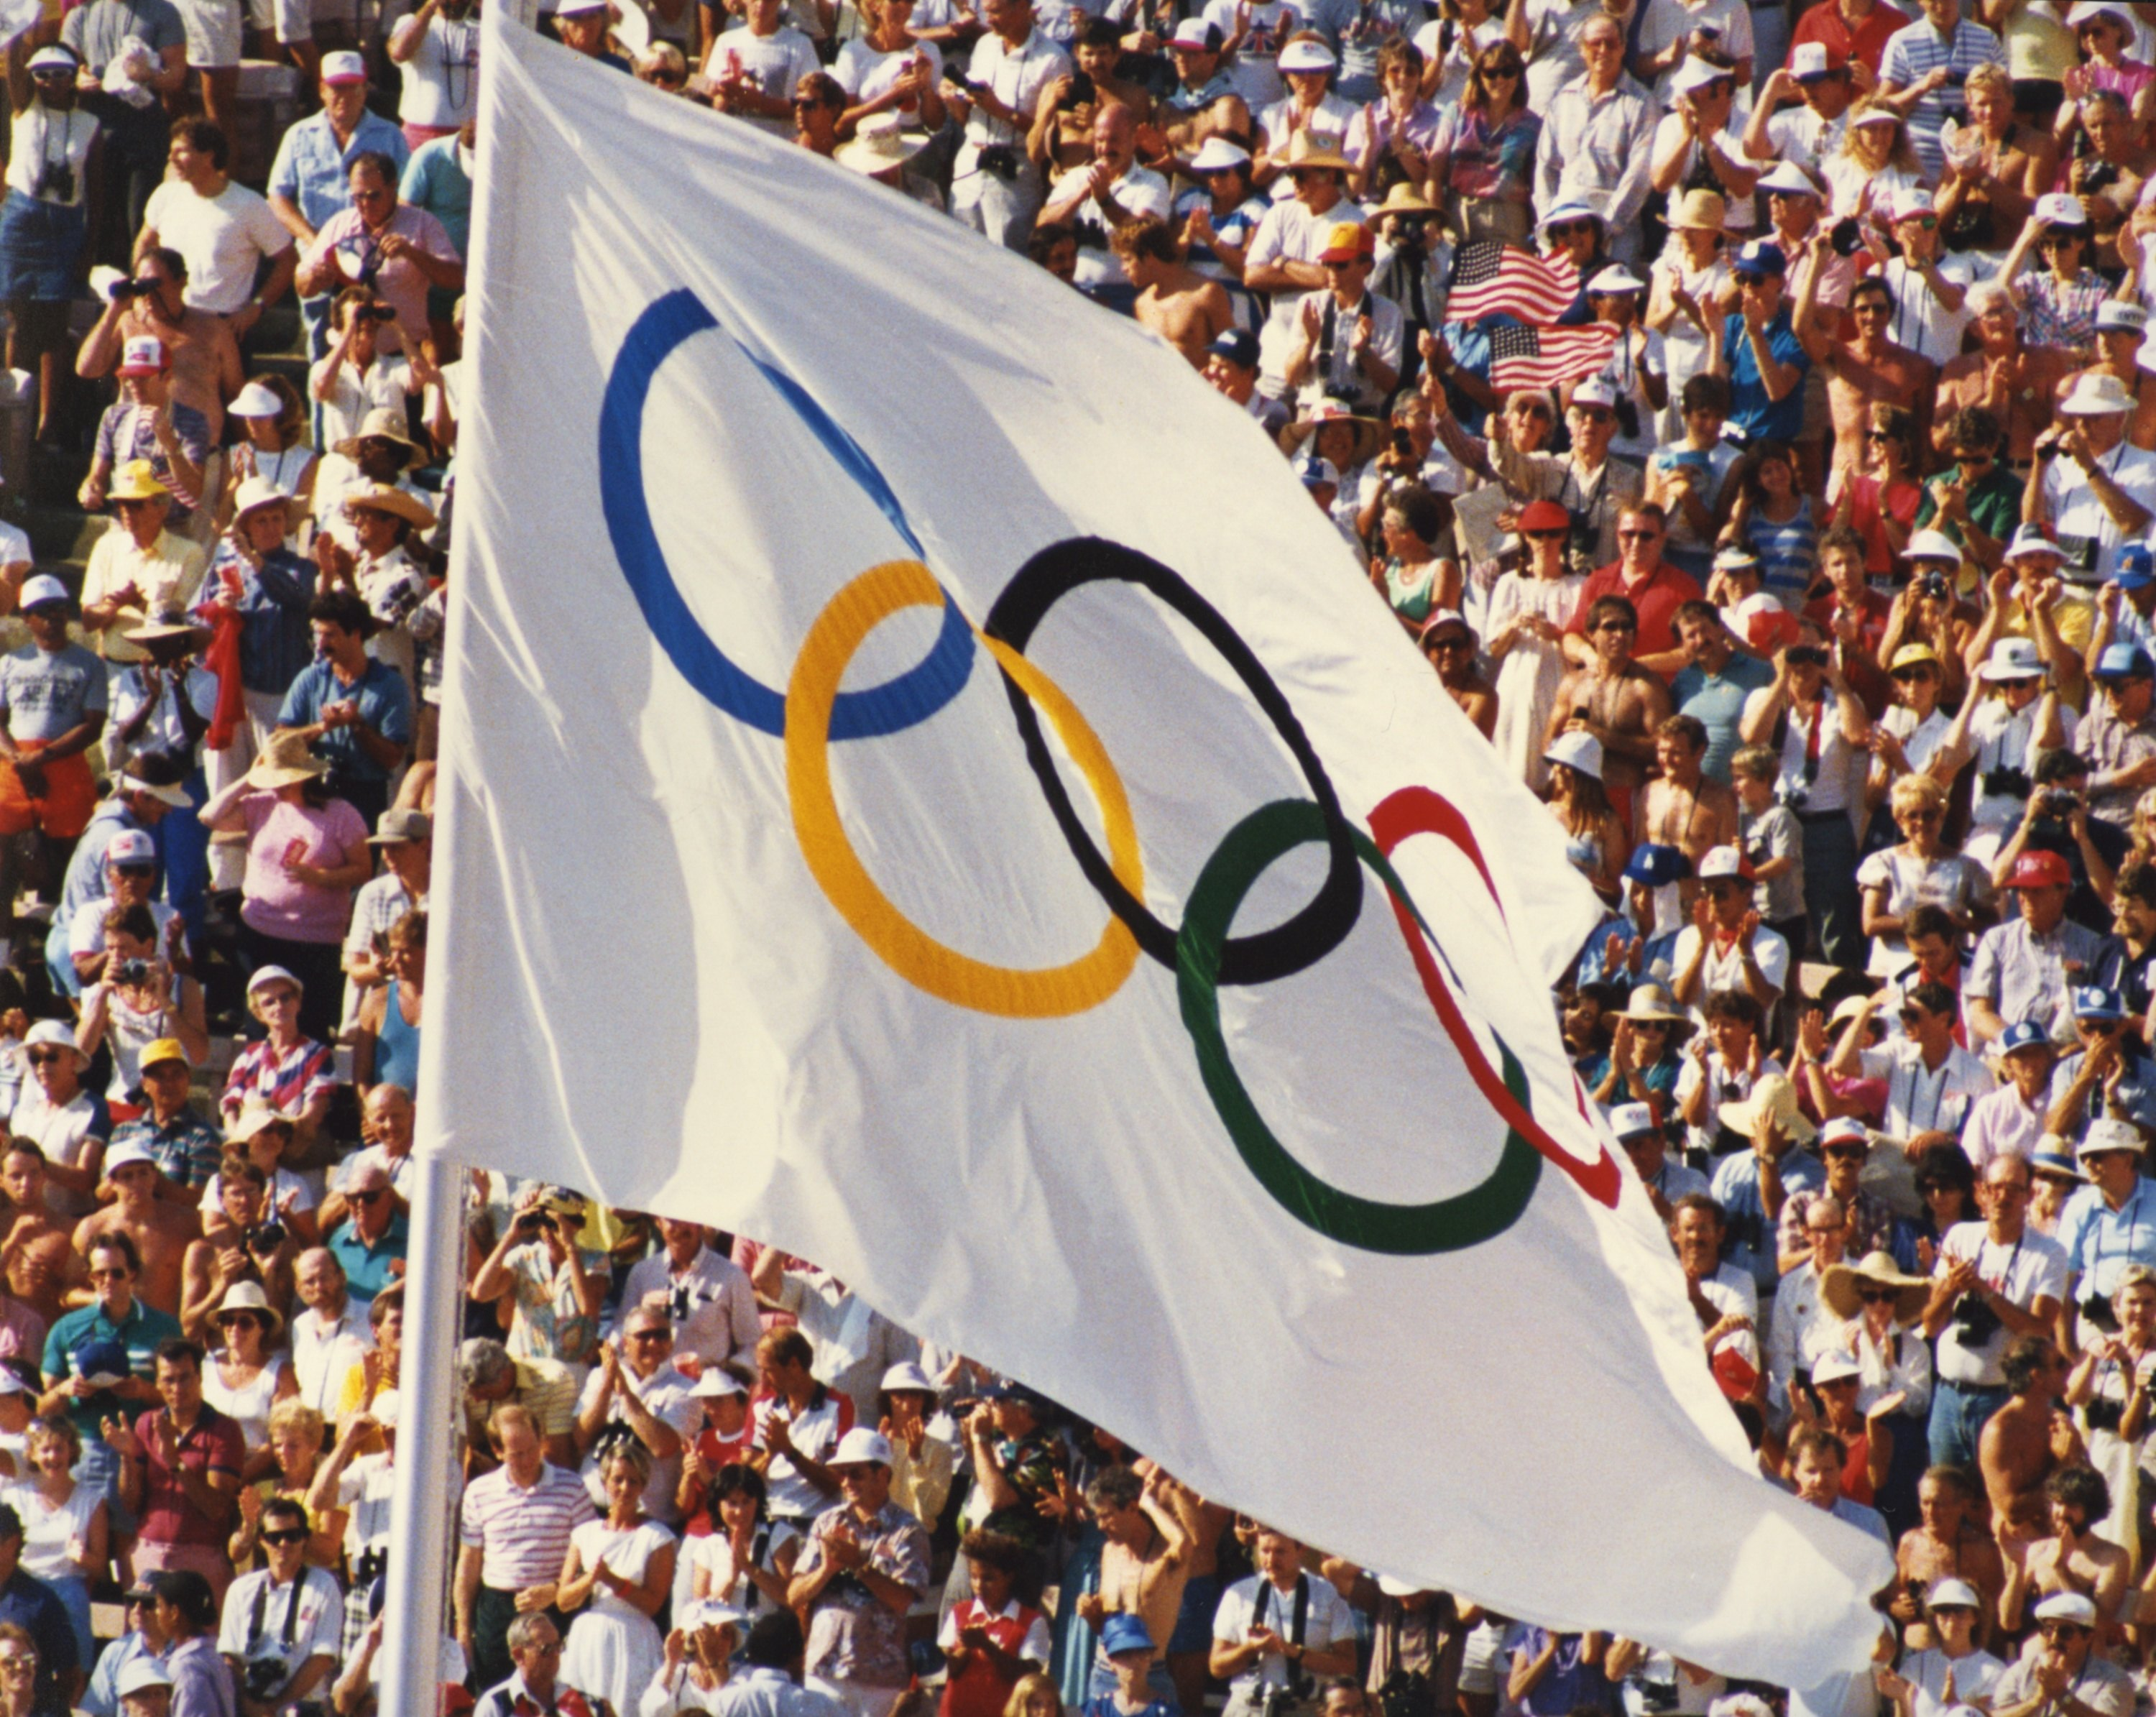 An Olympic flag at the 1988 Olympic Games in Seoul, South Korea.